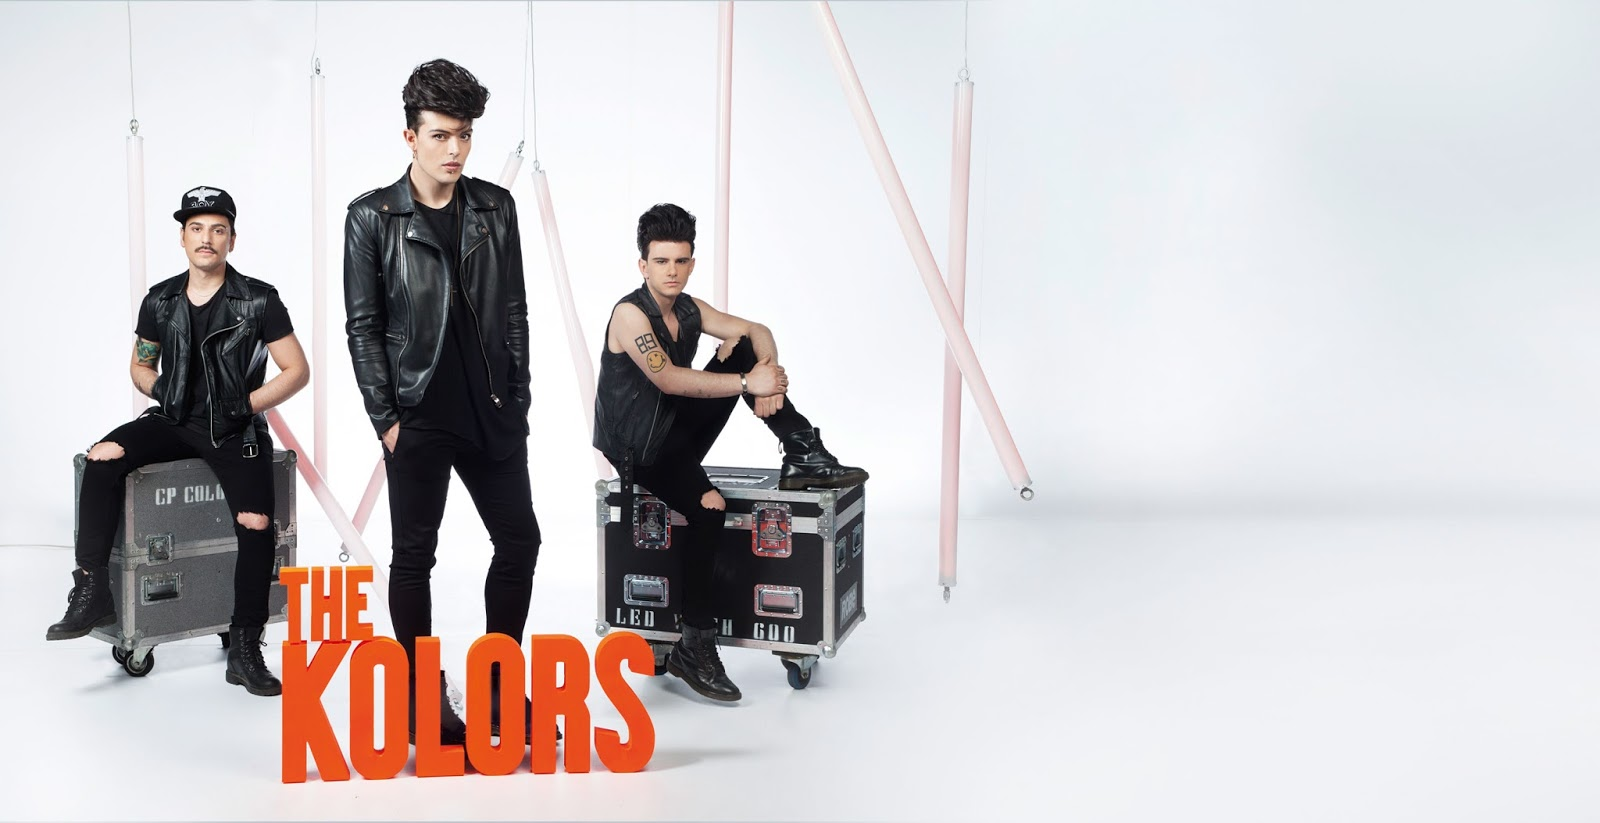 I'm Sorry - The Kolors: testo, video e traduzione